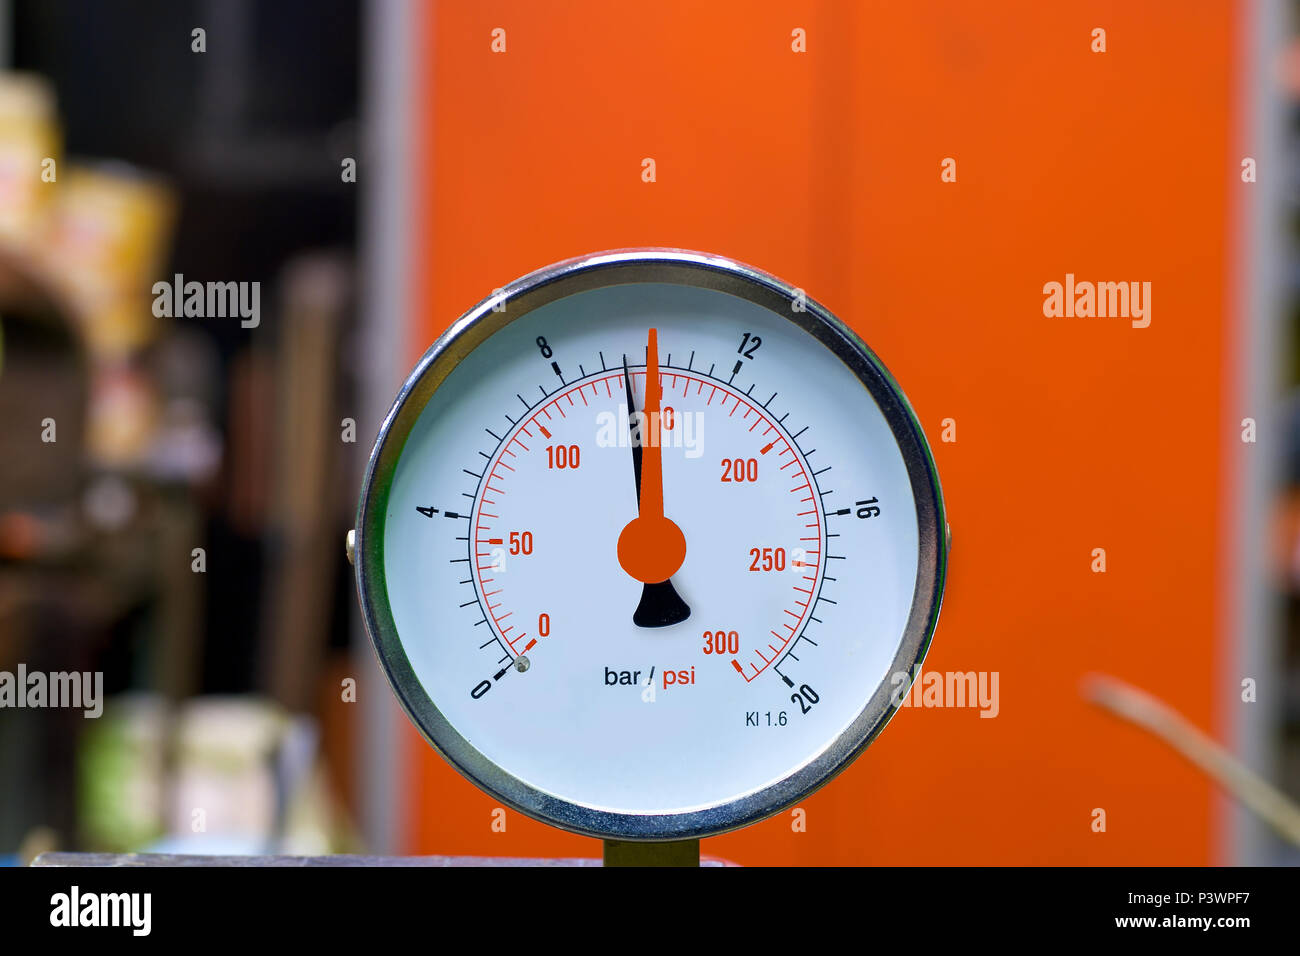 A 0 - 300 psi pressure gauge attached to an industrial boiler. - Stock Image